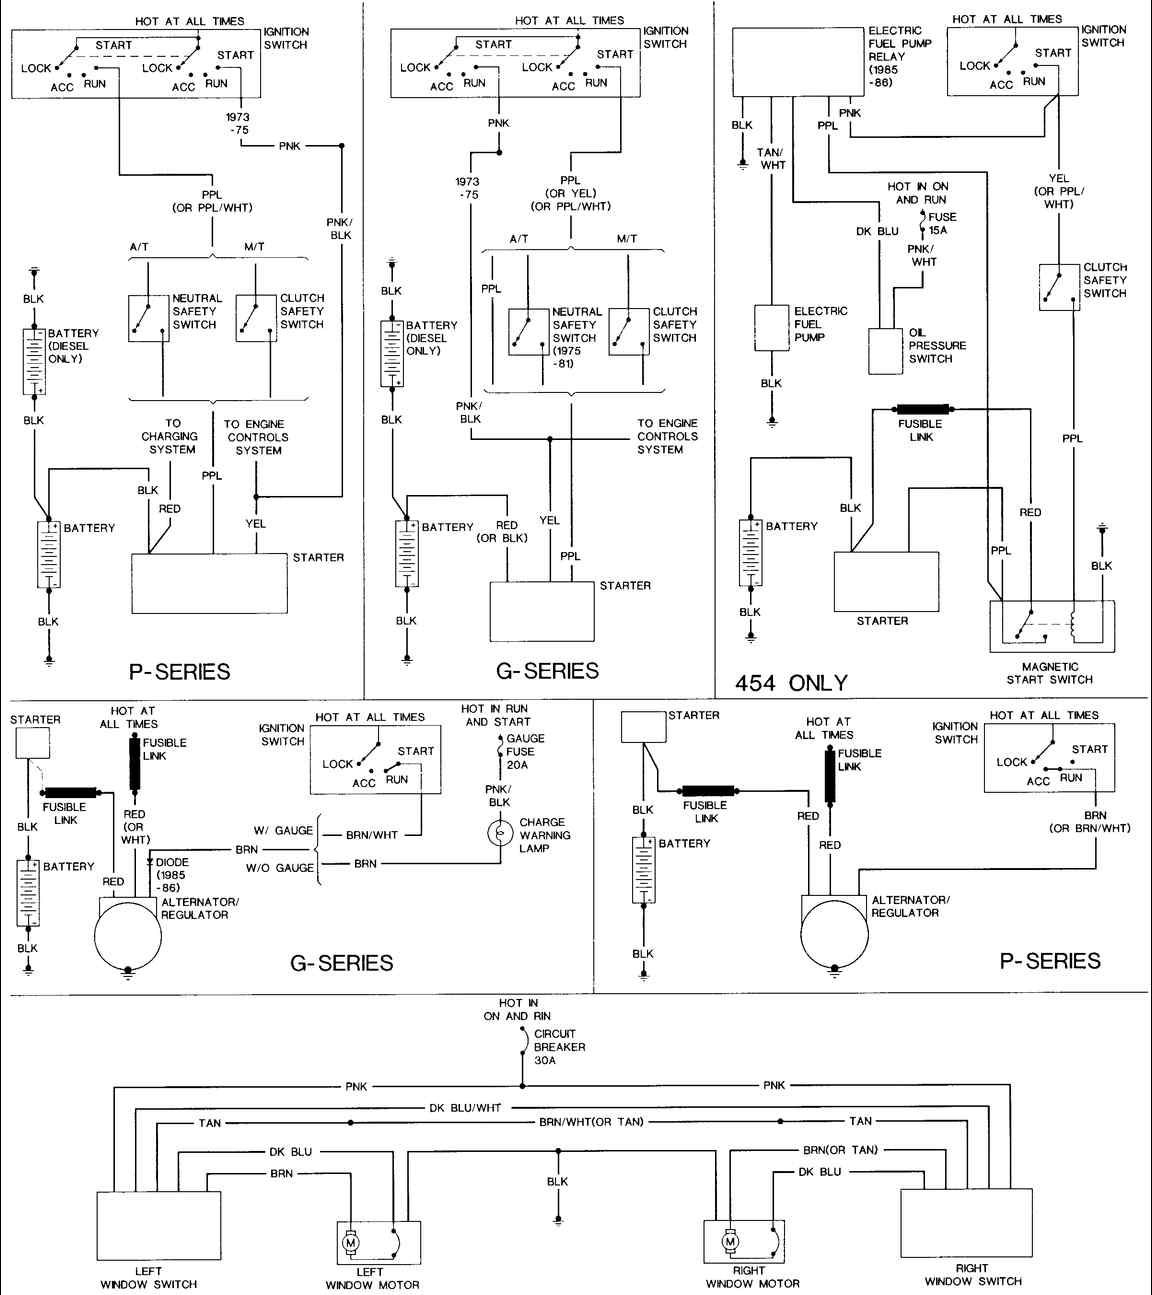 85 chevy truck wiring diagram 85 chevy van the steering column ford steering column wiring diagram [ 1152 x 1295 Pixel ]